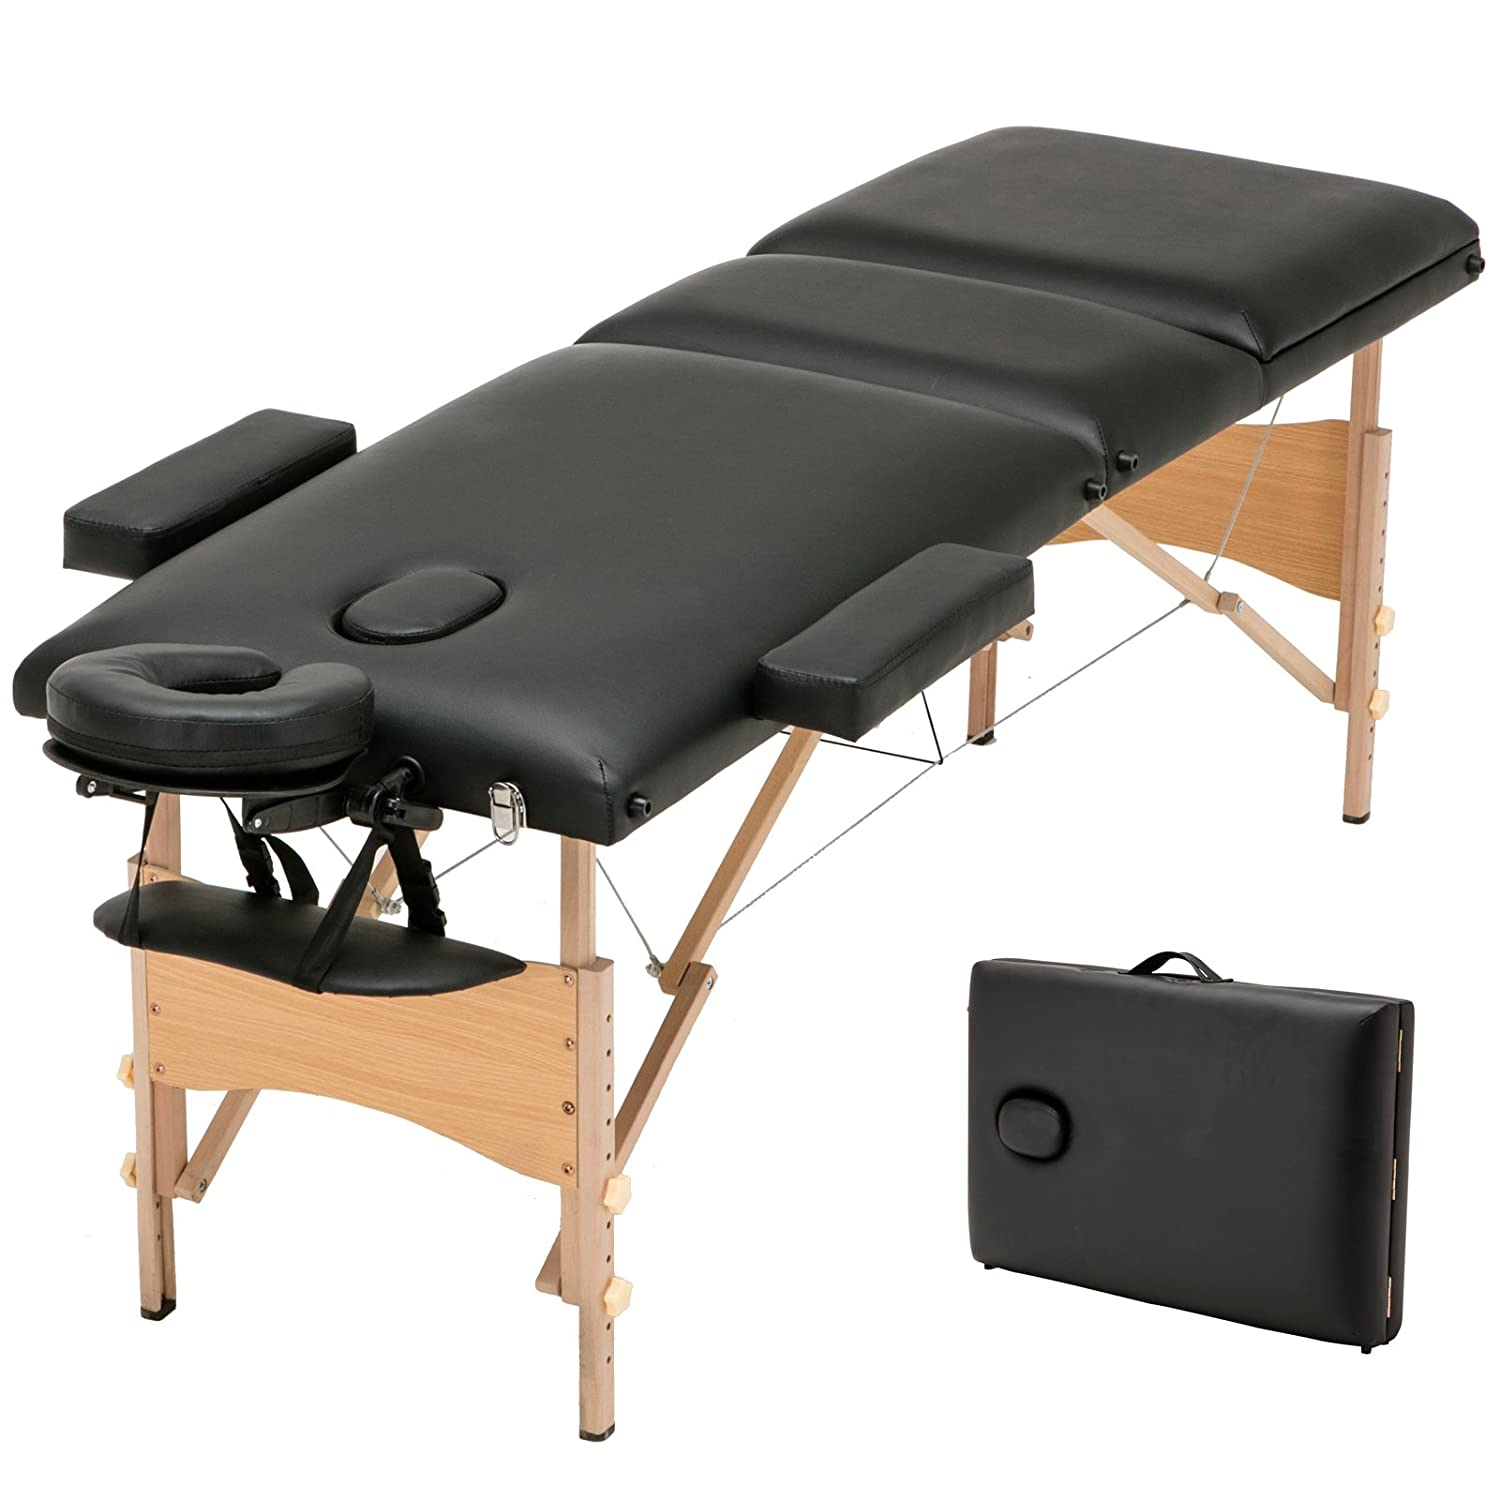 SUNCOO Portable Massage Table Folding Facial Bed Lightweight Wood Frame with Carrying Case, 3 Fold Design, Including Sheet& 2 Bolsters& Cradle& Hanger Black